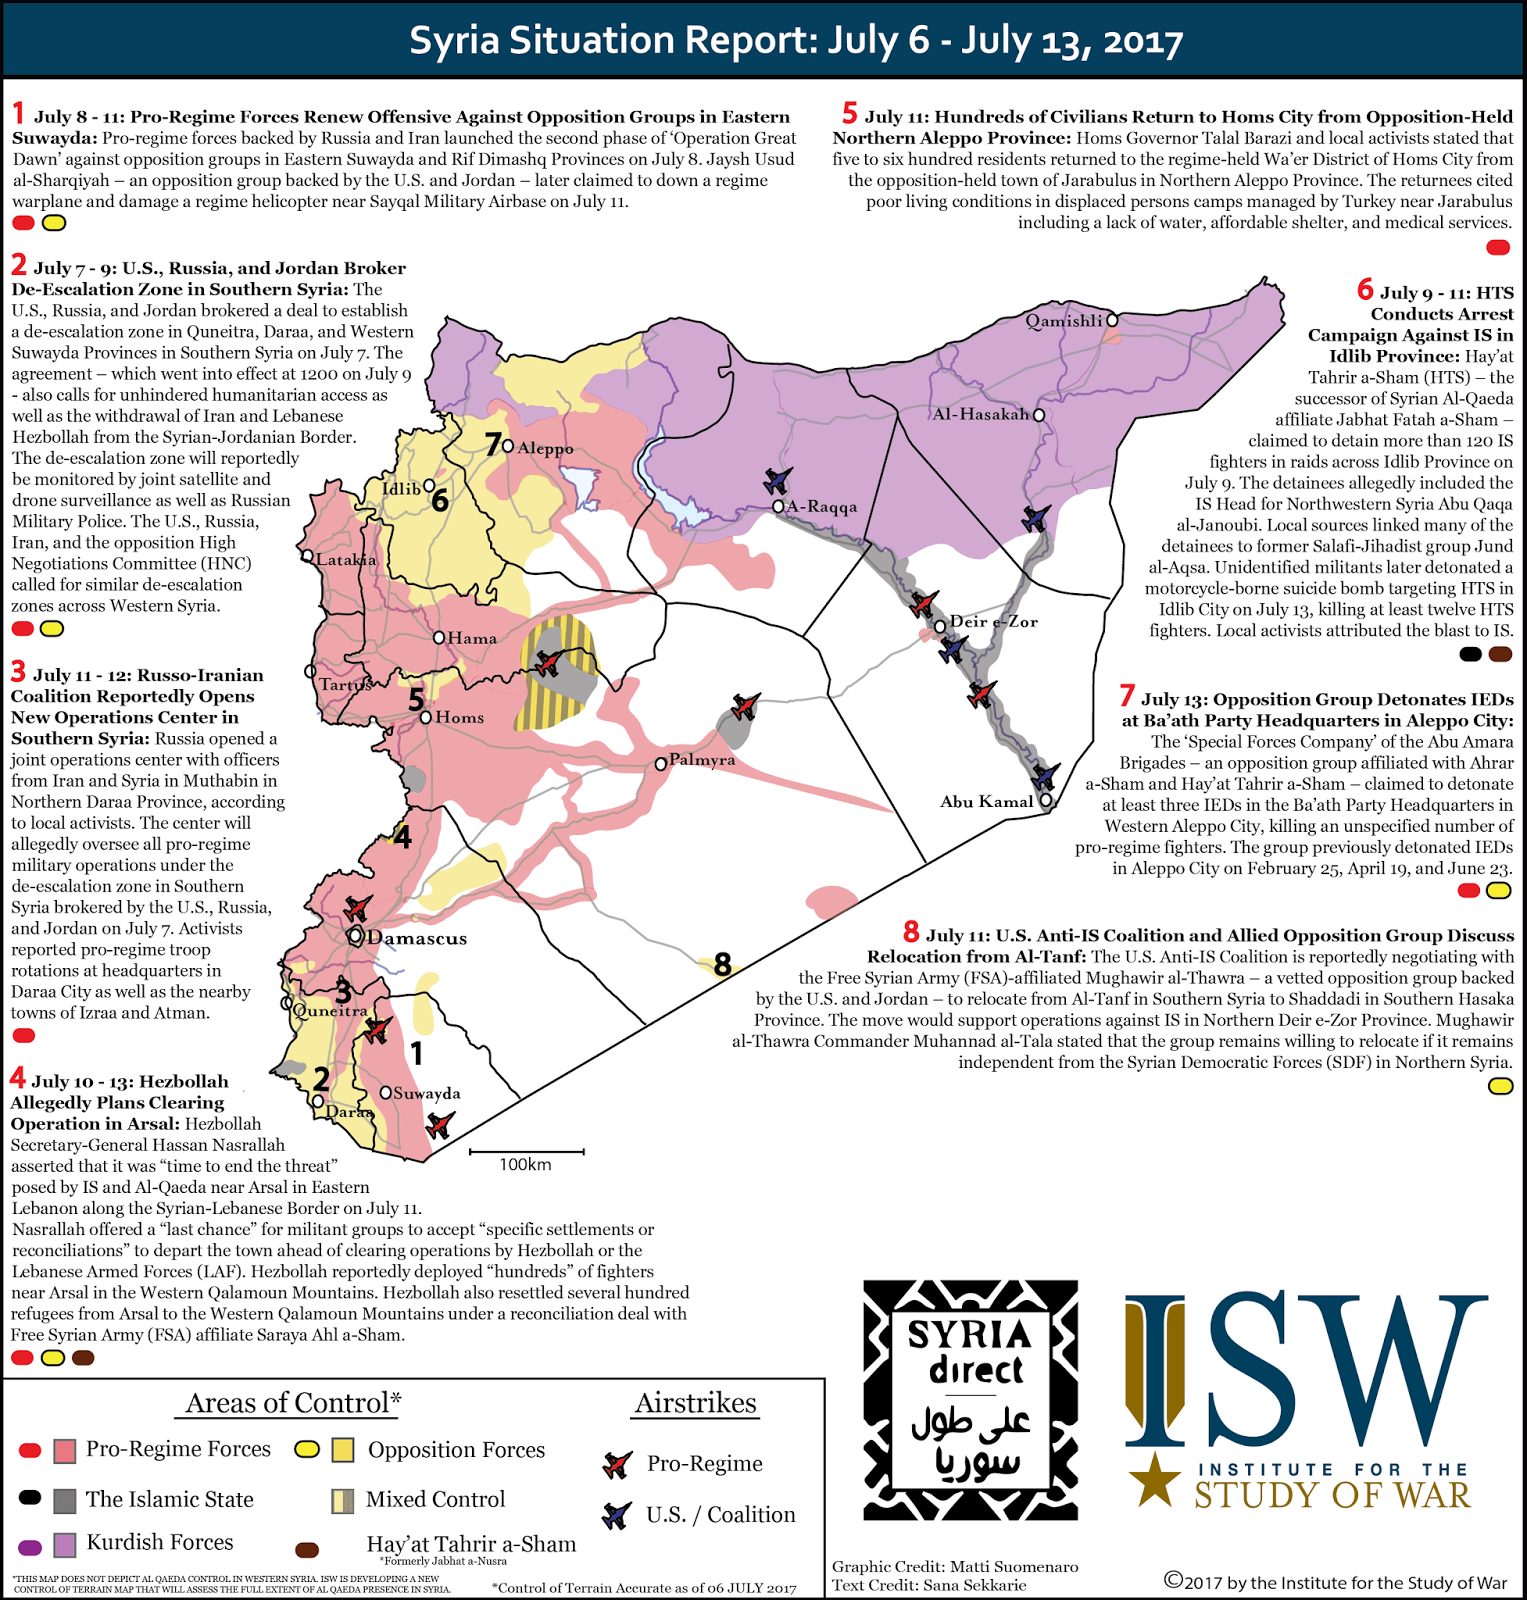 Syria Situation Report: June 29 - July 27, 2017